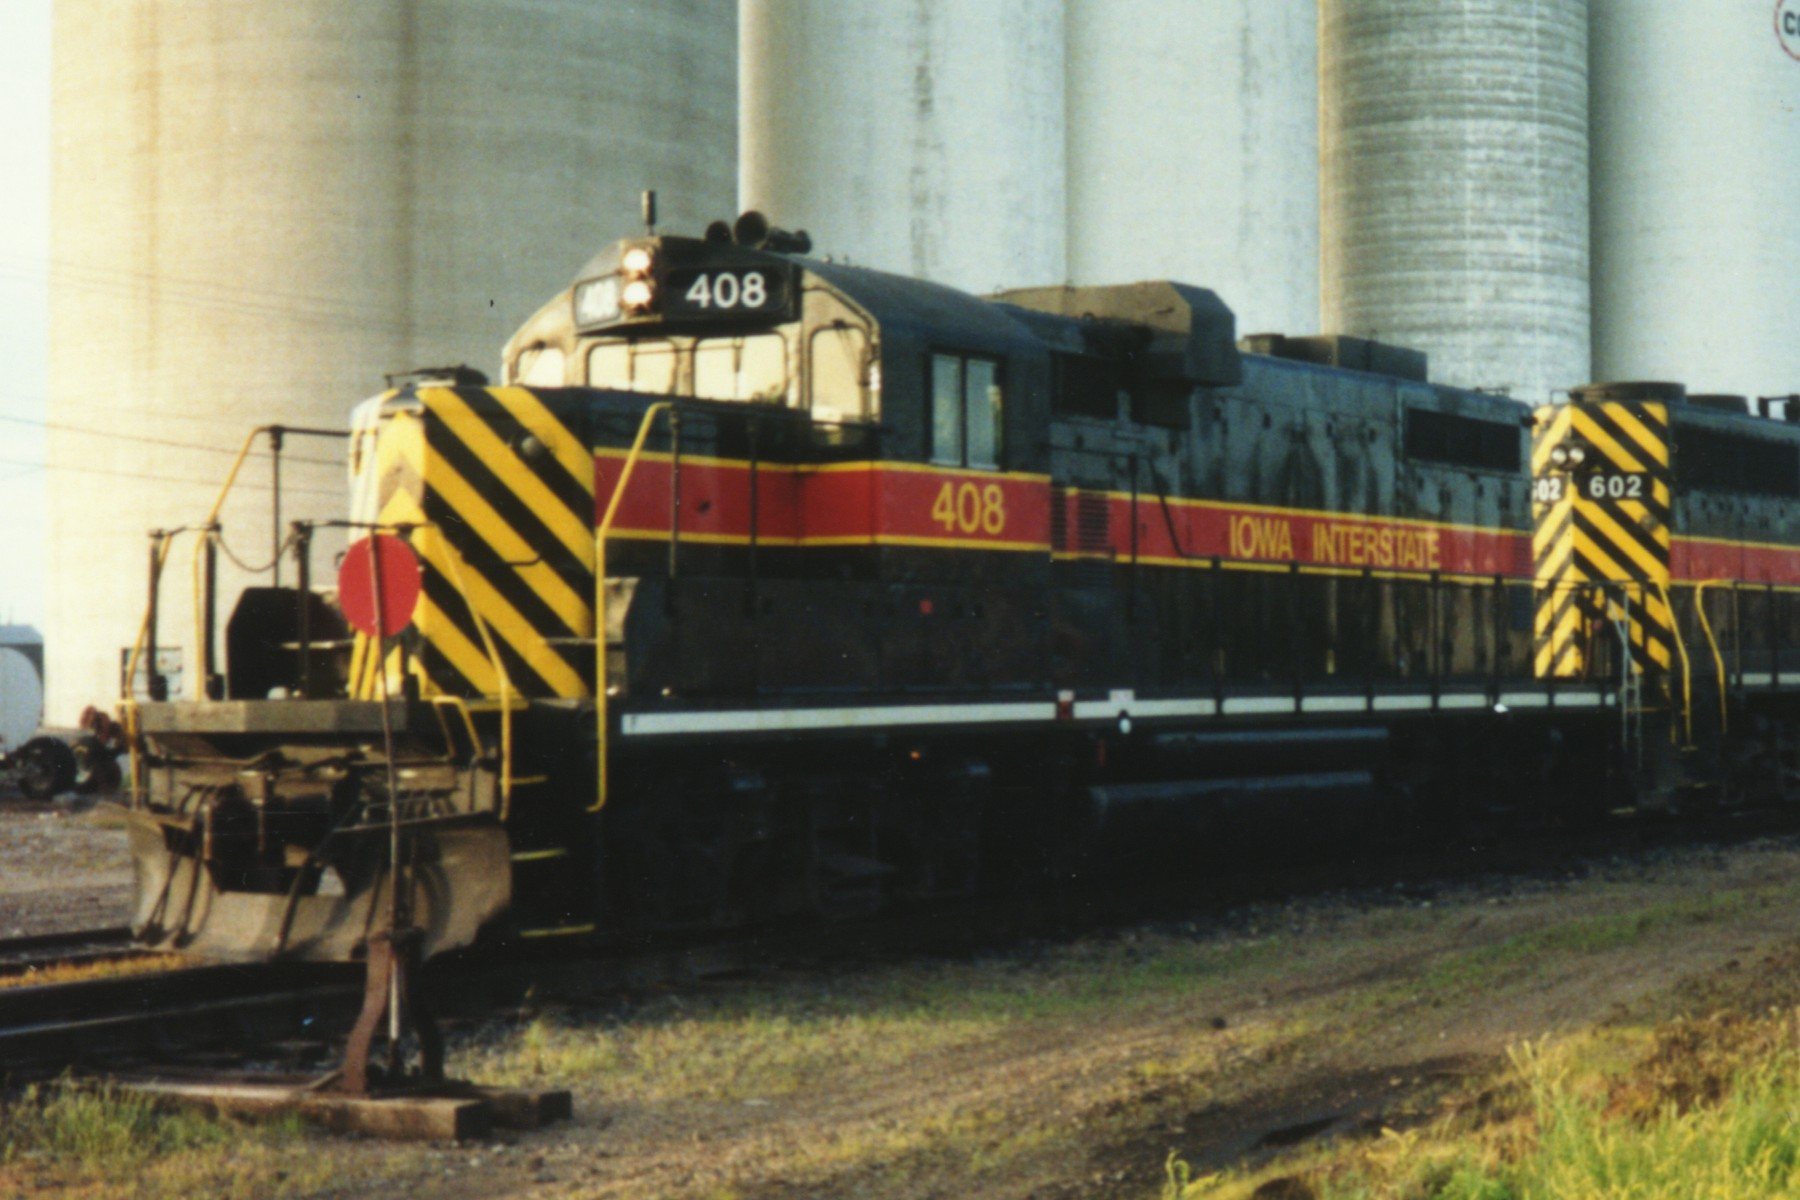 IAIS 408 at Altoona, IA on 01-Jun-1992